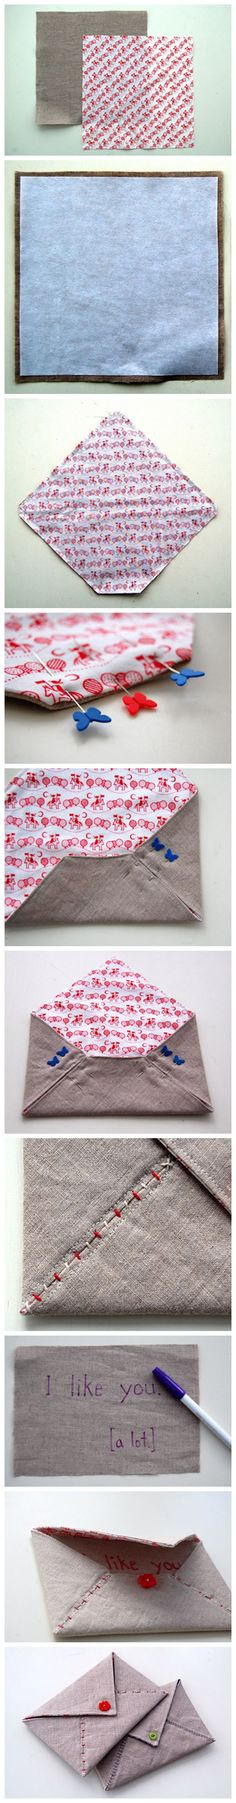 Stitched envelope.. love it.